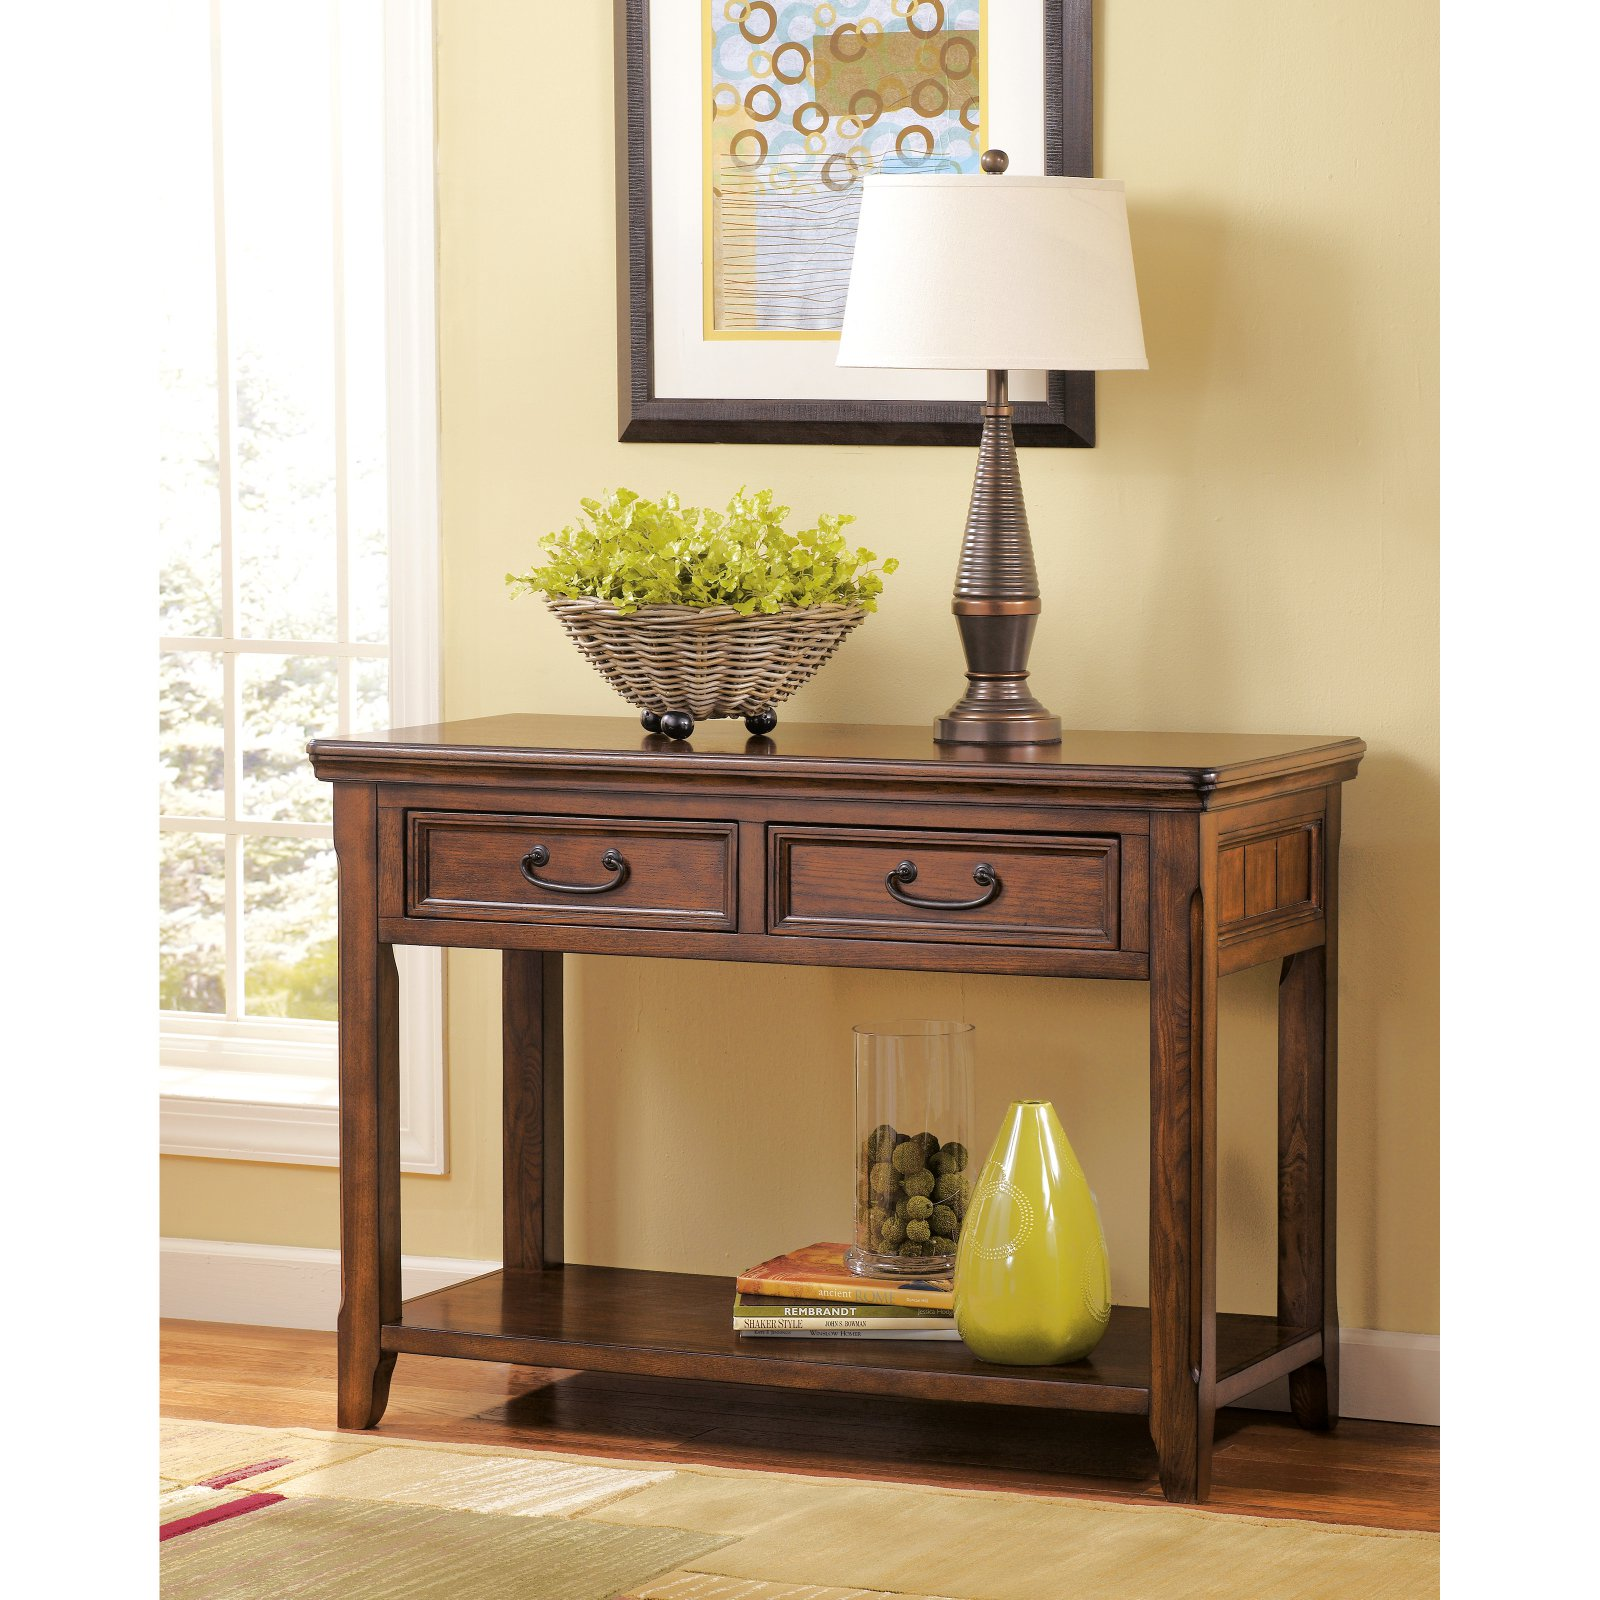 Signature Design by Ashley Woodboro Sofa Table by Ashley Furniture